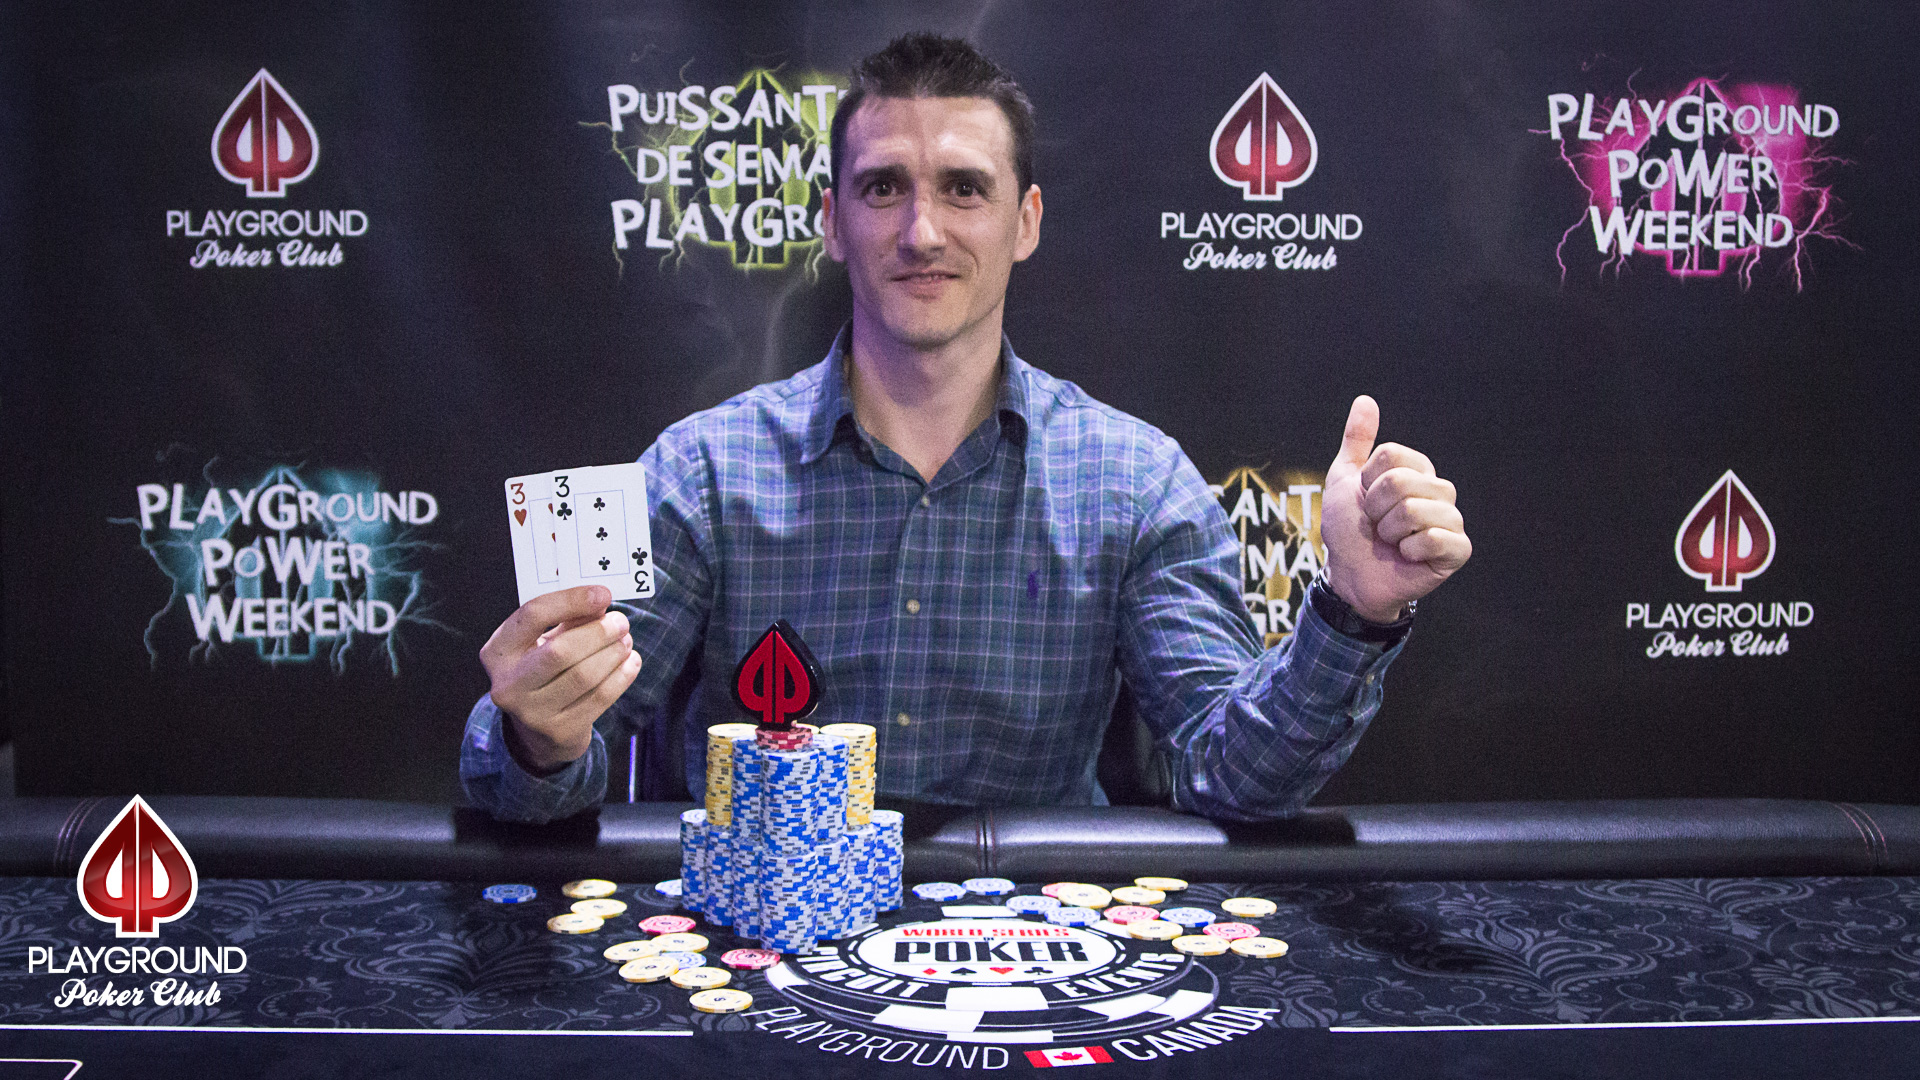 The Champion of Event 3: Andrei Cernopolc